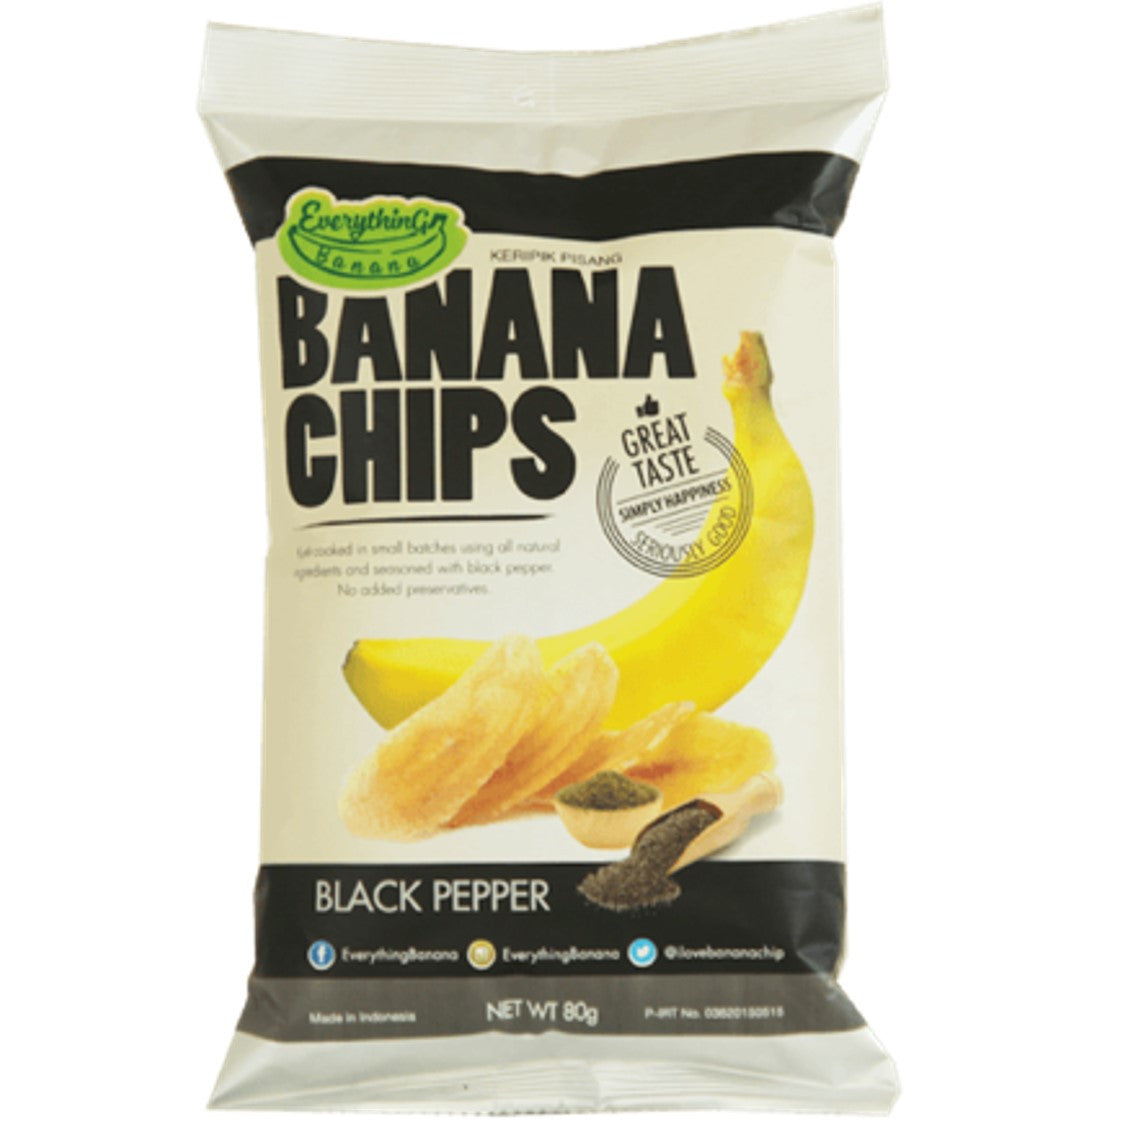 Everything Banana Chips - Black Pepper, 80g.-NaturesWisdom